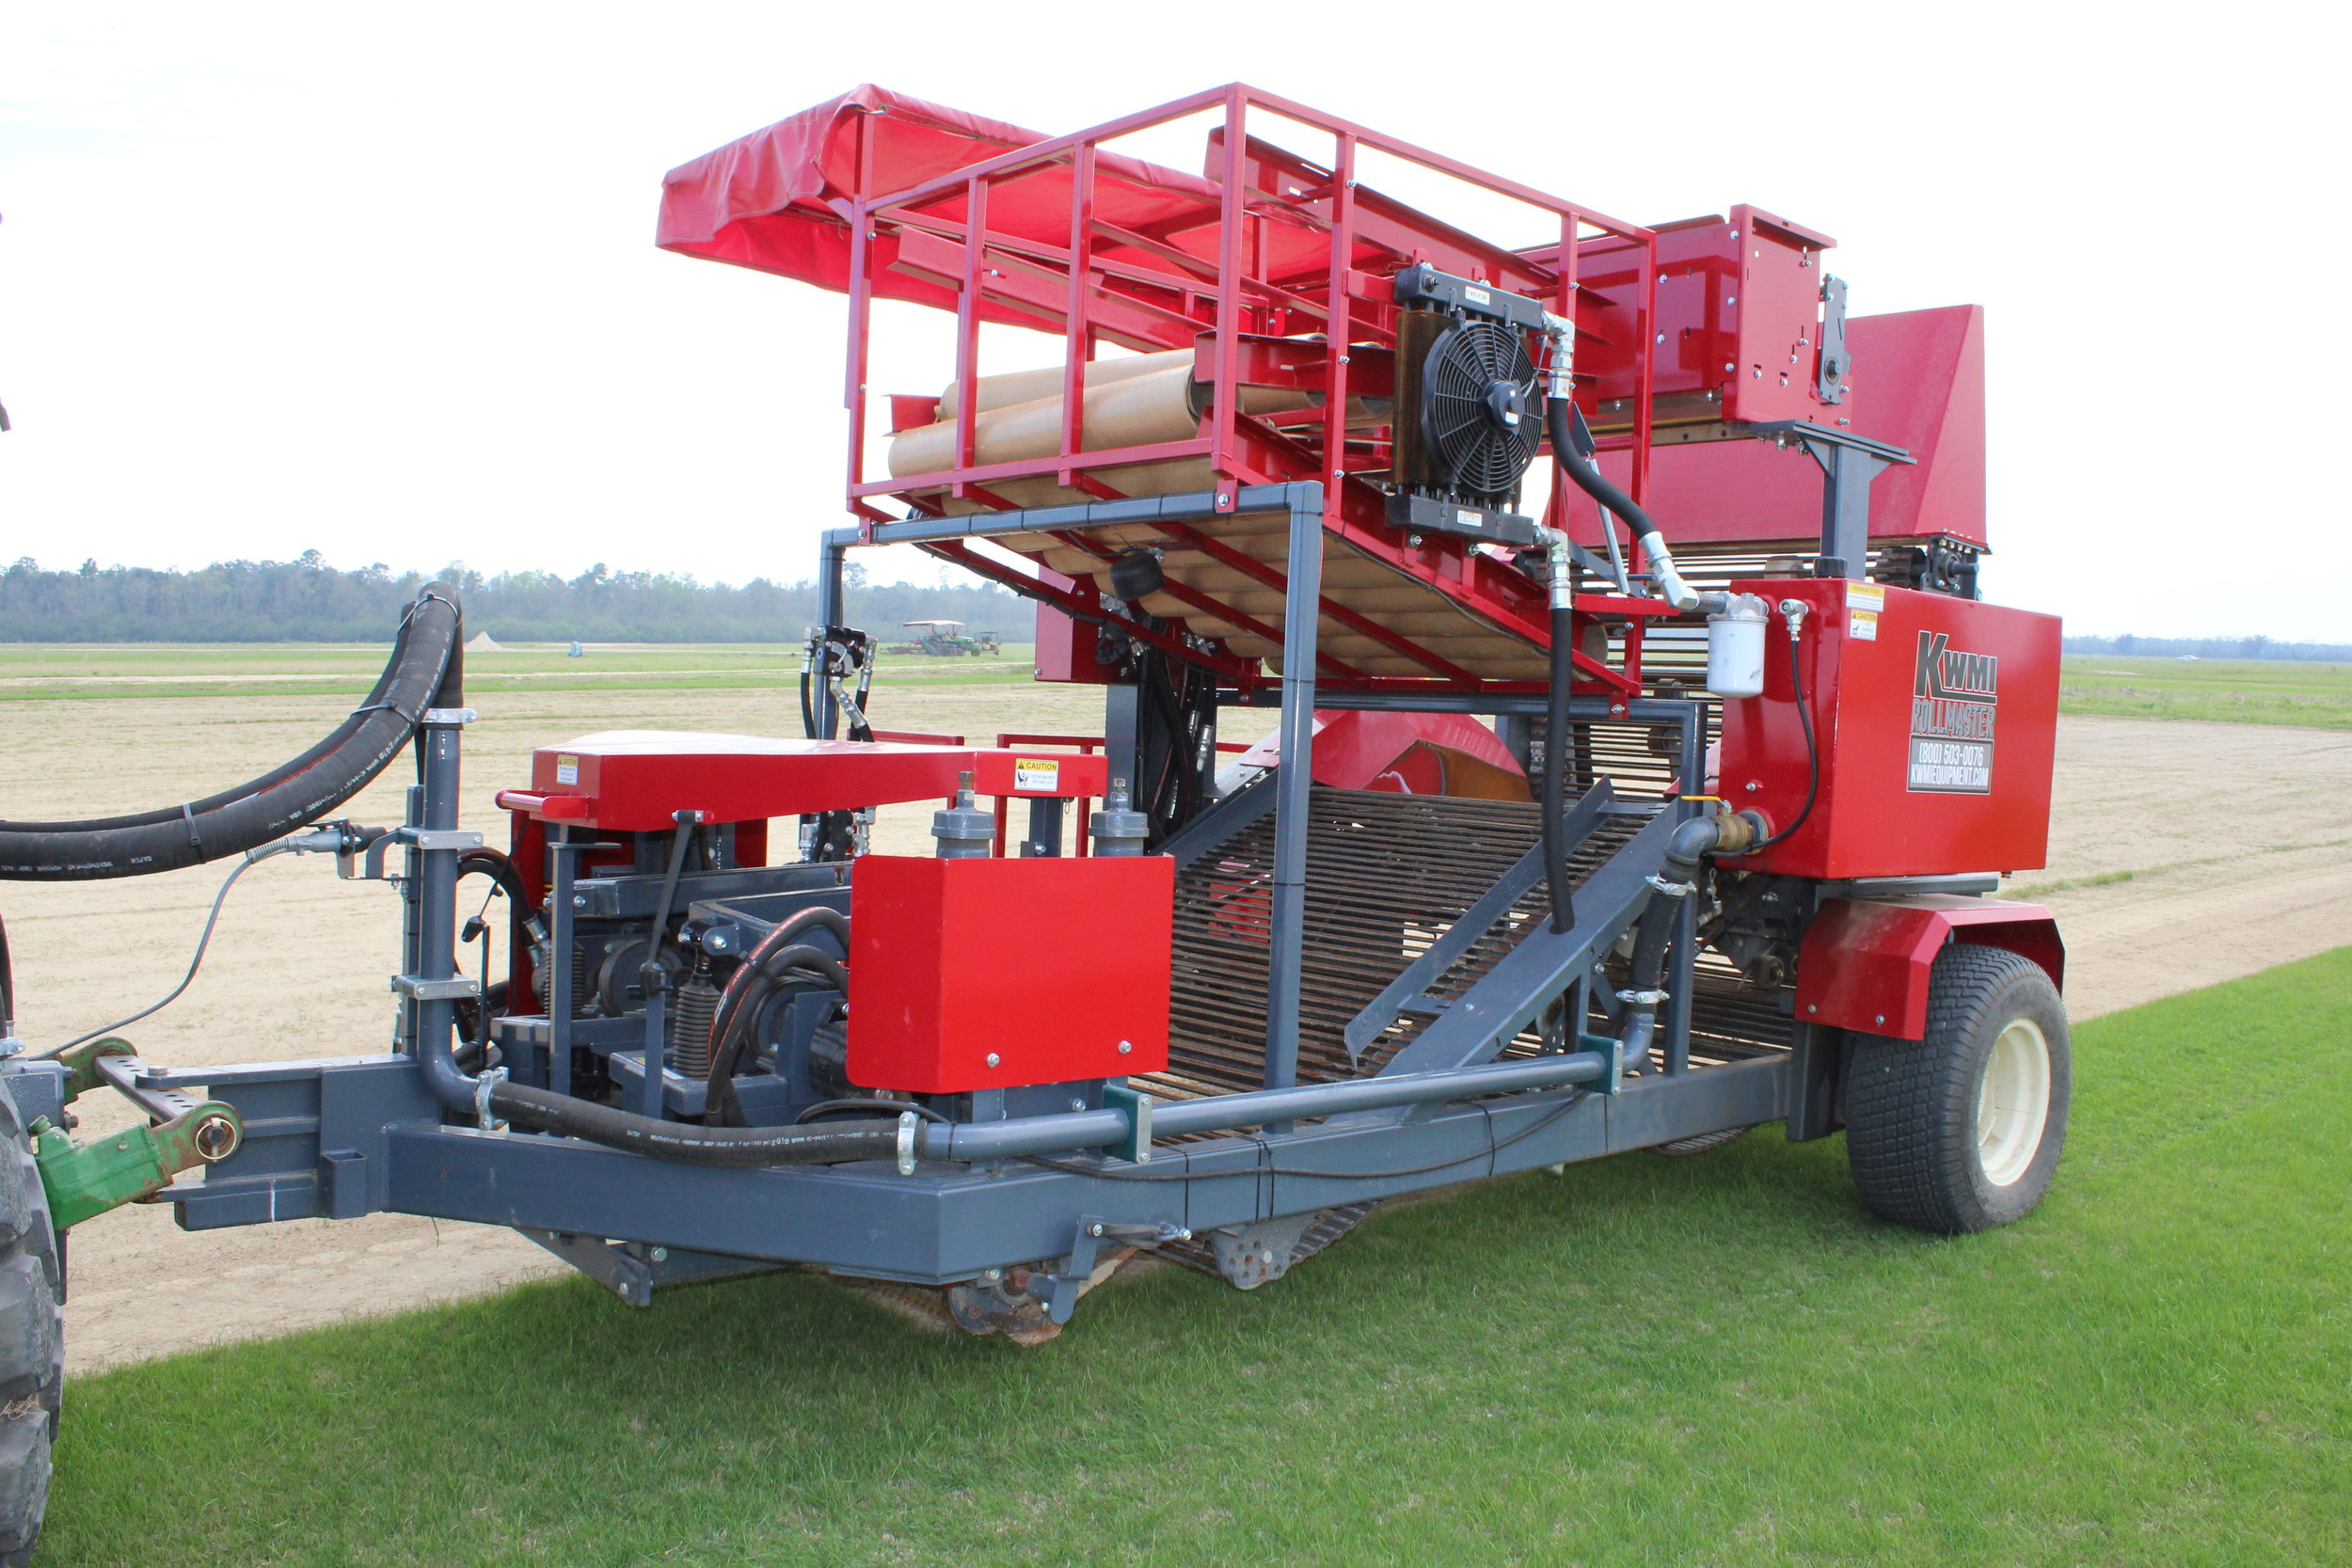 RollMaster Big Roll Harvester